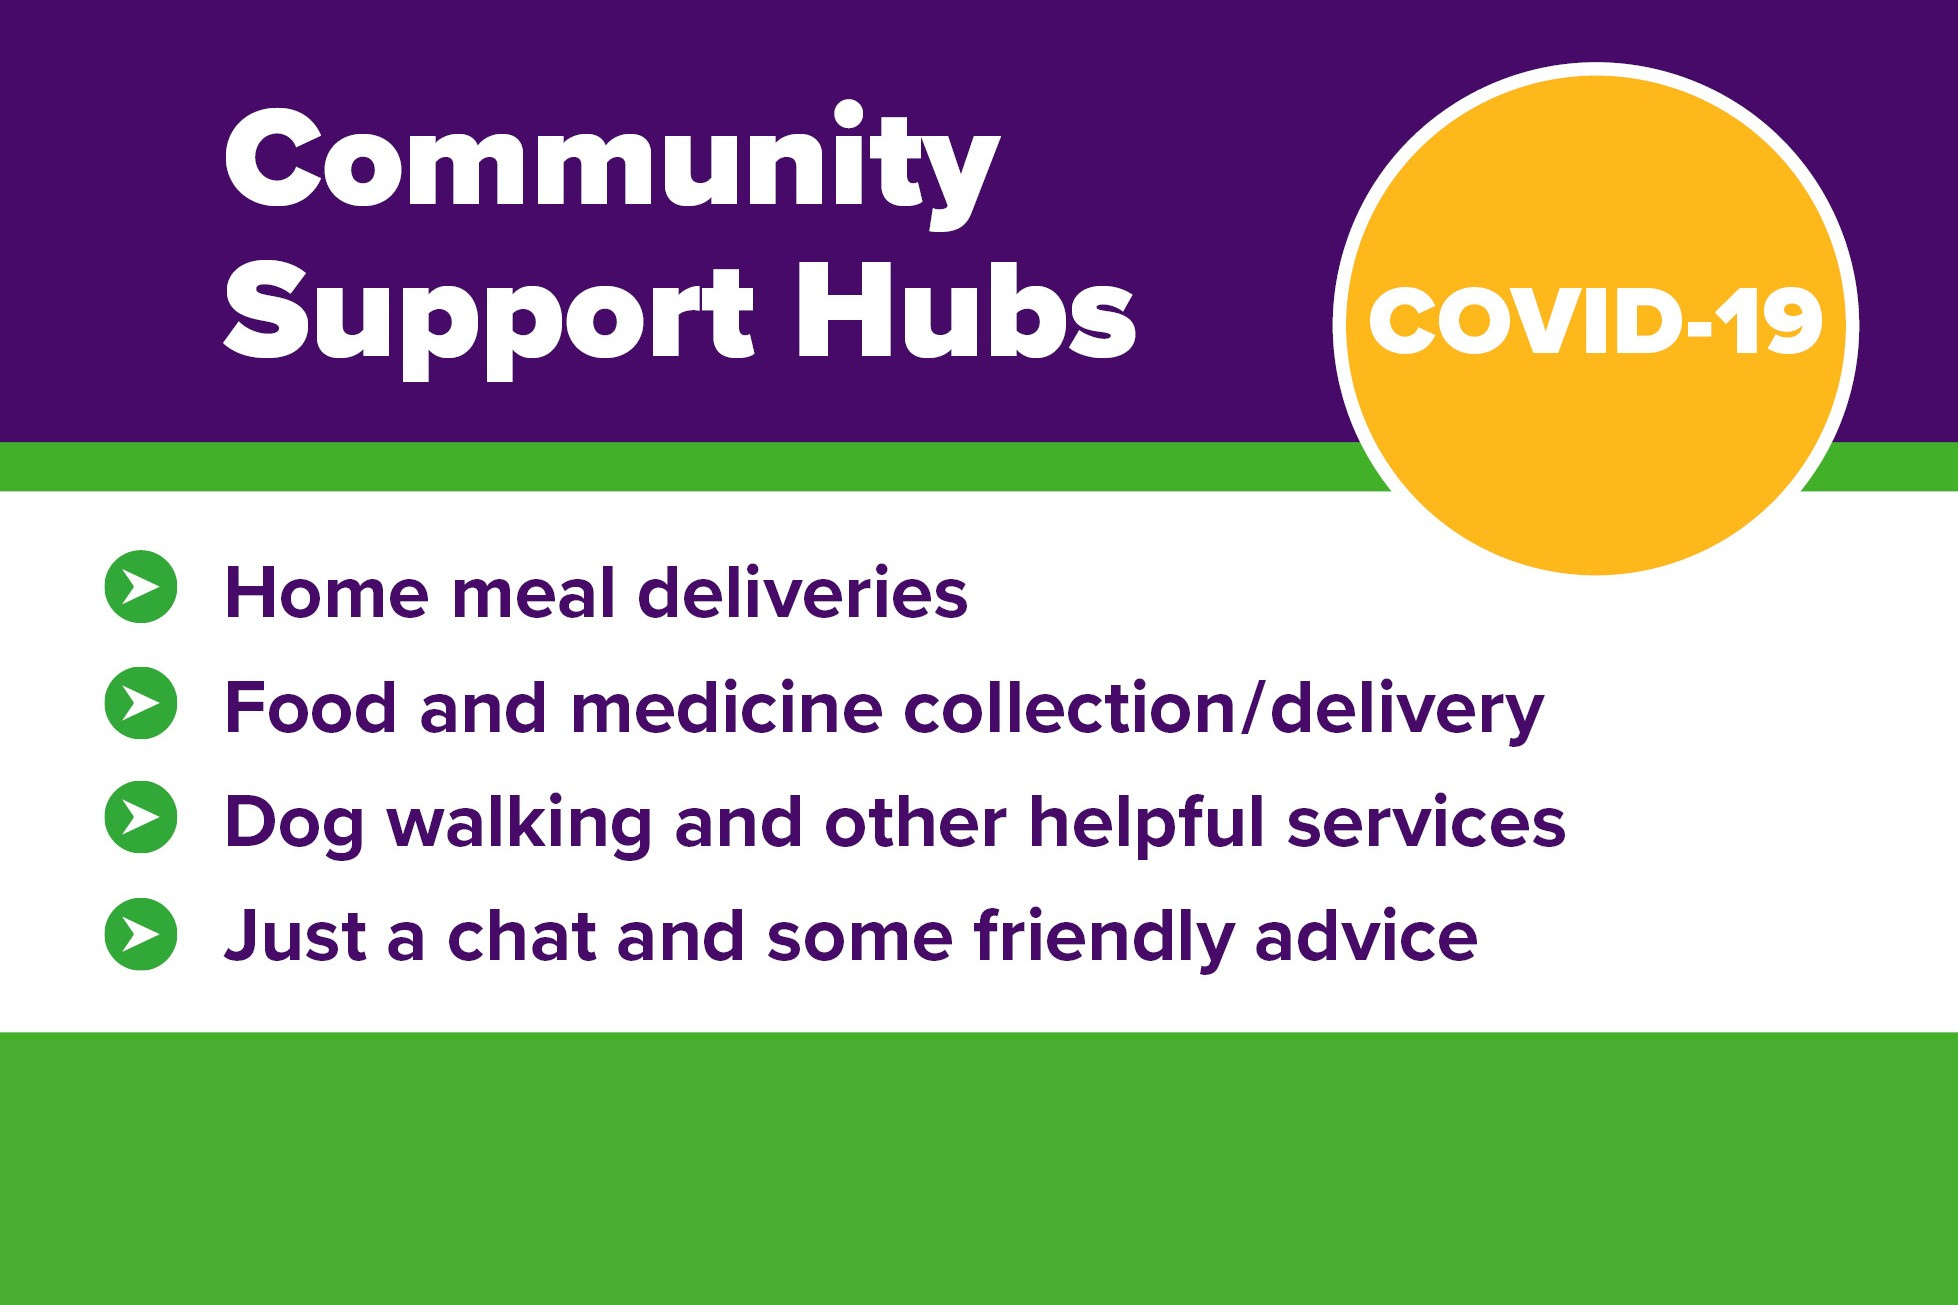 An image relating to Community hubs to support vulnerable residents